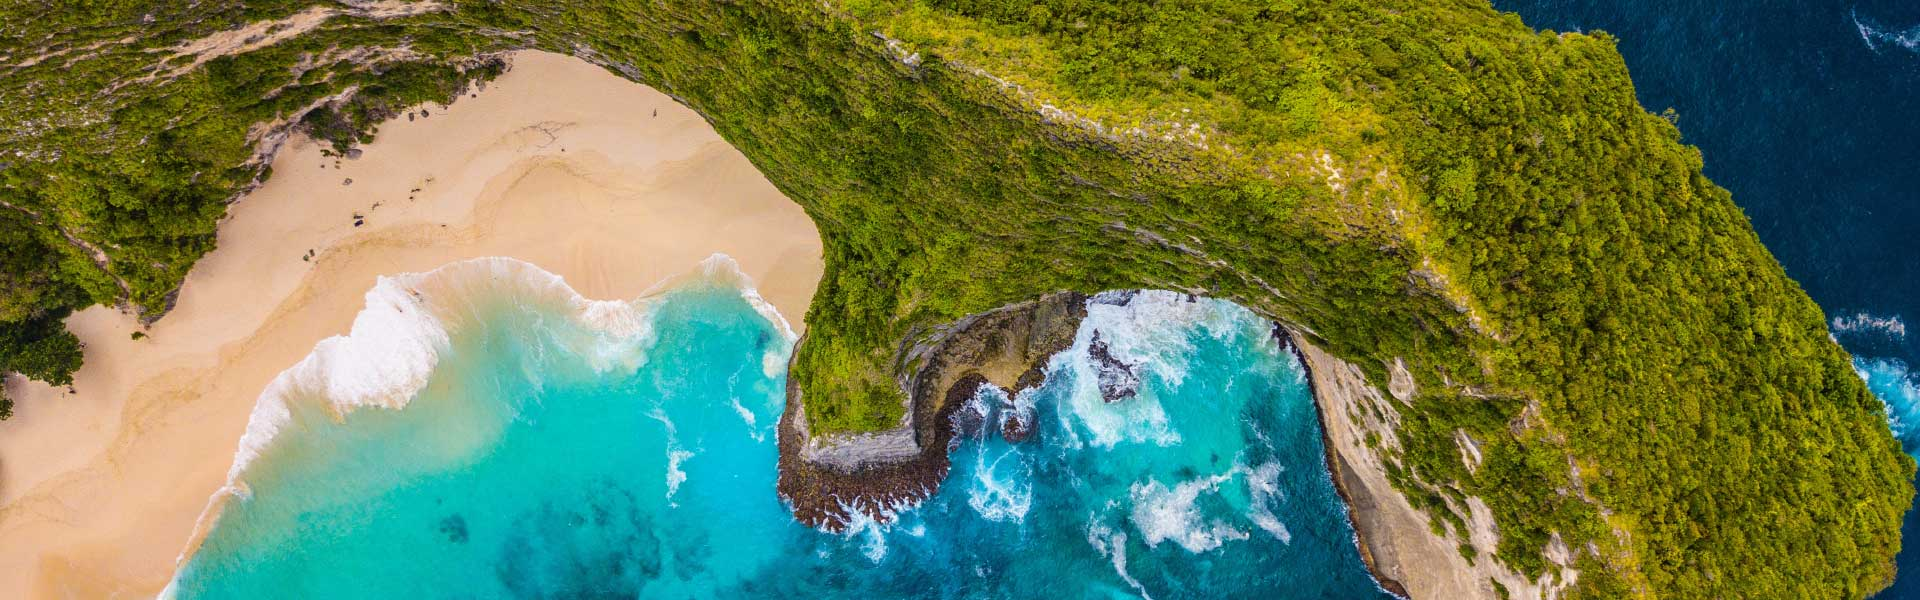 Shows Nusa Penida island from above - Bali 3 week itinerary